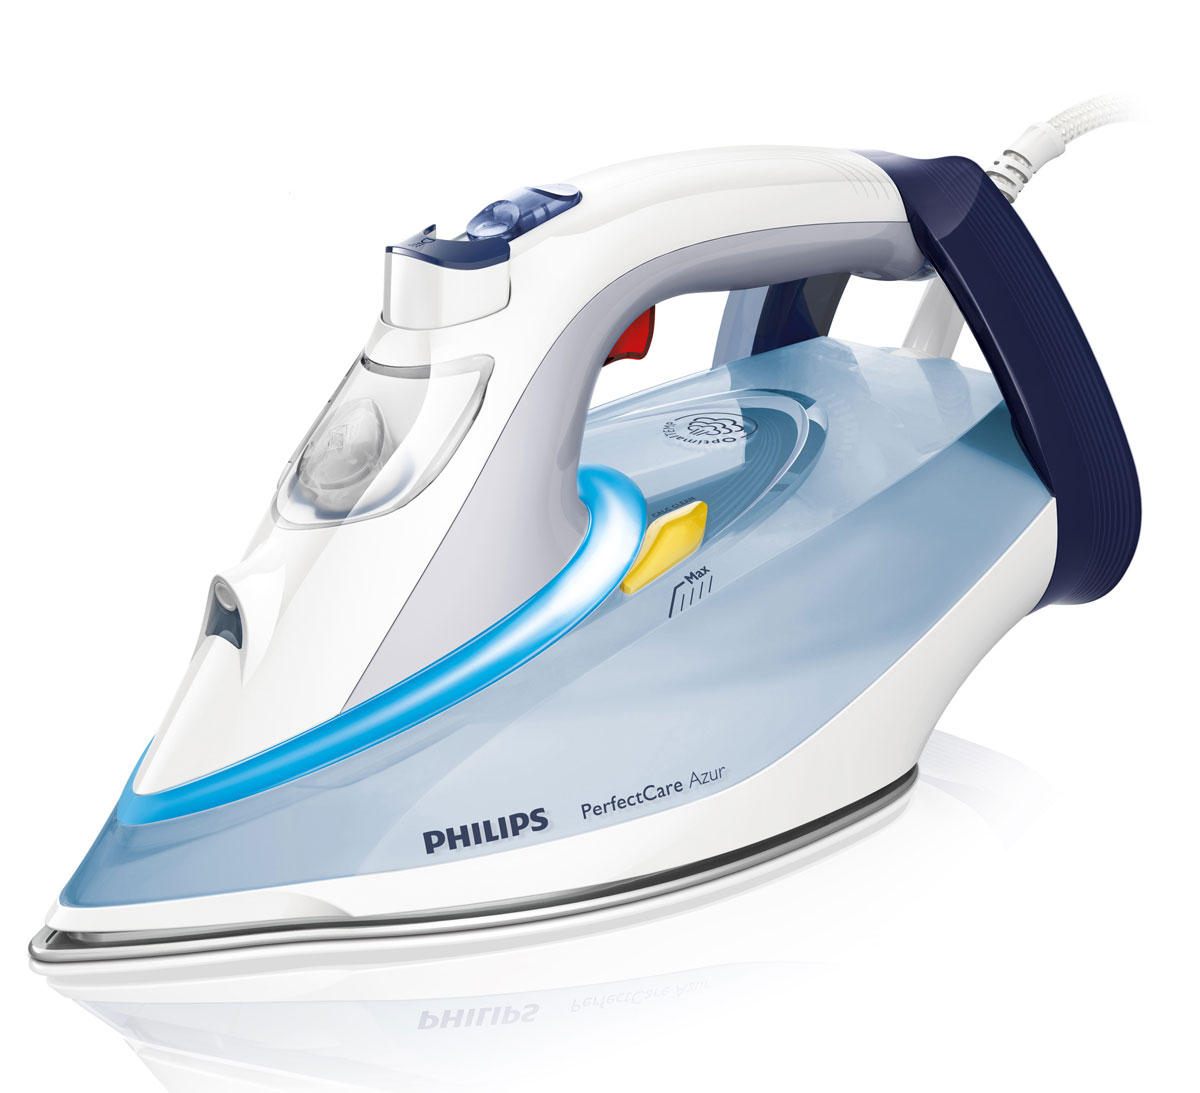 Philips Azur GC4910/10 паровой утюг утюг philips perfectcare xpress gc5050 02 отзывы